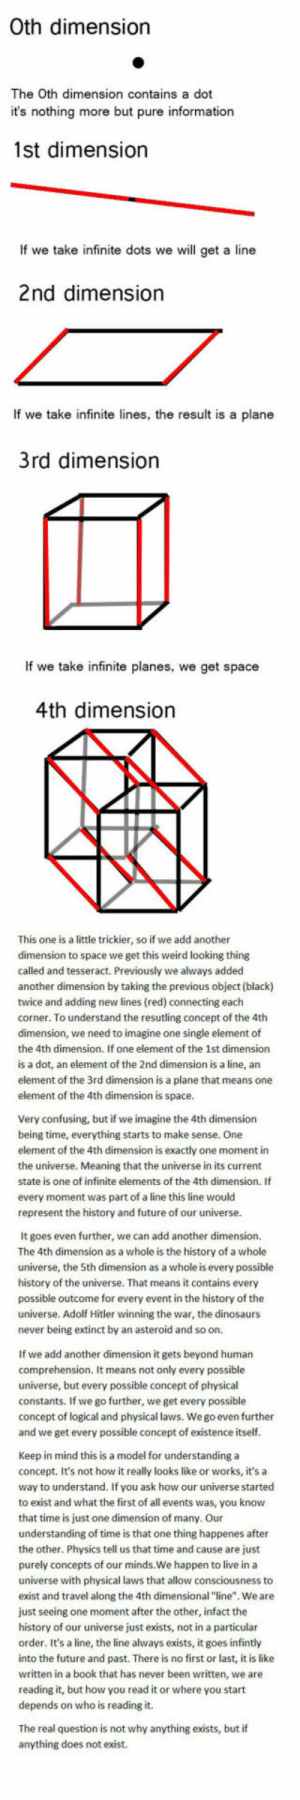 "epicjohndoe:  An Easy Way To Understand It All: Oth dimension  The Oth dimension contains a dot  it's nothing more but pure information  1st dimension  If we take infinite dots we will get a line  2nd dimension  If we take infinite lines, the result is a plane  3rd dimension  If we take infinite planes, we get space  4th dimension  This one is a little trickier, so if we add another  dimension to space we get this weird looking thing  called and tesseract. Previously we always added  another dimension by taking the previous object (black)  twice and adding new lines (red) connecting each  corner. To understand the resutling concept of the 4th  dimension, we need to imagine one single element of  the 4th dimension. If one element of the 1st dimension  is a dot, an element of the 2nd dimension is a line, an  element of the 3rd dimension is a plane that means one  element of the 4th dimension is space  Very confusing, but if we imagine the 4th dimension  being time, everything starts to make sense. One  element of the 4th dimension is exactly one moment in  the universe. Meaning that the universe in its current  state is one of infinite elements of the 4th dimension. If  every moment was part of a line this line would  represent the history and future of our universe  It goes even further, we can add another dimension.  The 4th dimension as a whole is the history of a whole  universe, the 5th dimension as a whole is every possible  history of the universe. That means it contains every  possible outcome for every event in the history of the  universe. Adolf Hitler winning the war, the dinosaurs  never being extinct by an asteroid and so on.  If we add another dimension it gets beyond human  comprehension. It means not only every possible  universe, but every possible concept of physical  constants. If we go further, we get every possible  concept of logical and physical laws. We go even further  and we get every possible concept of existence itseltf  Keep in mind this is a model for understanding a  concept. It's not how it really looks like or works, it's a  way to understand. If you ask how our universe started  to exist and what the first of all events was, you know  that time is just one dimension of many. Our  understanding of time is that one thing happenes after  the other. Physics tell us that time and cause are just  purely concepts of our minds.We happen to live in a  universe with physical laws that allow consciousness to  exist and travel along the 4th dimensional ""line"". Weare  just seeing one moment after the other, infact the  history of our universe just exists, not in a particular  order. It's a line, the line always exists, it goes infintly  into the future and past. There is no first or last, it is like  written in a book that has never been written, we are  reading it, but how you read it or where you start  depends on who is reading it.  The real question is not why anything exists, but if  anything does not exist. epicjohndoe:  An Easy Way To Understand It All"